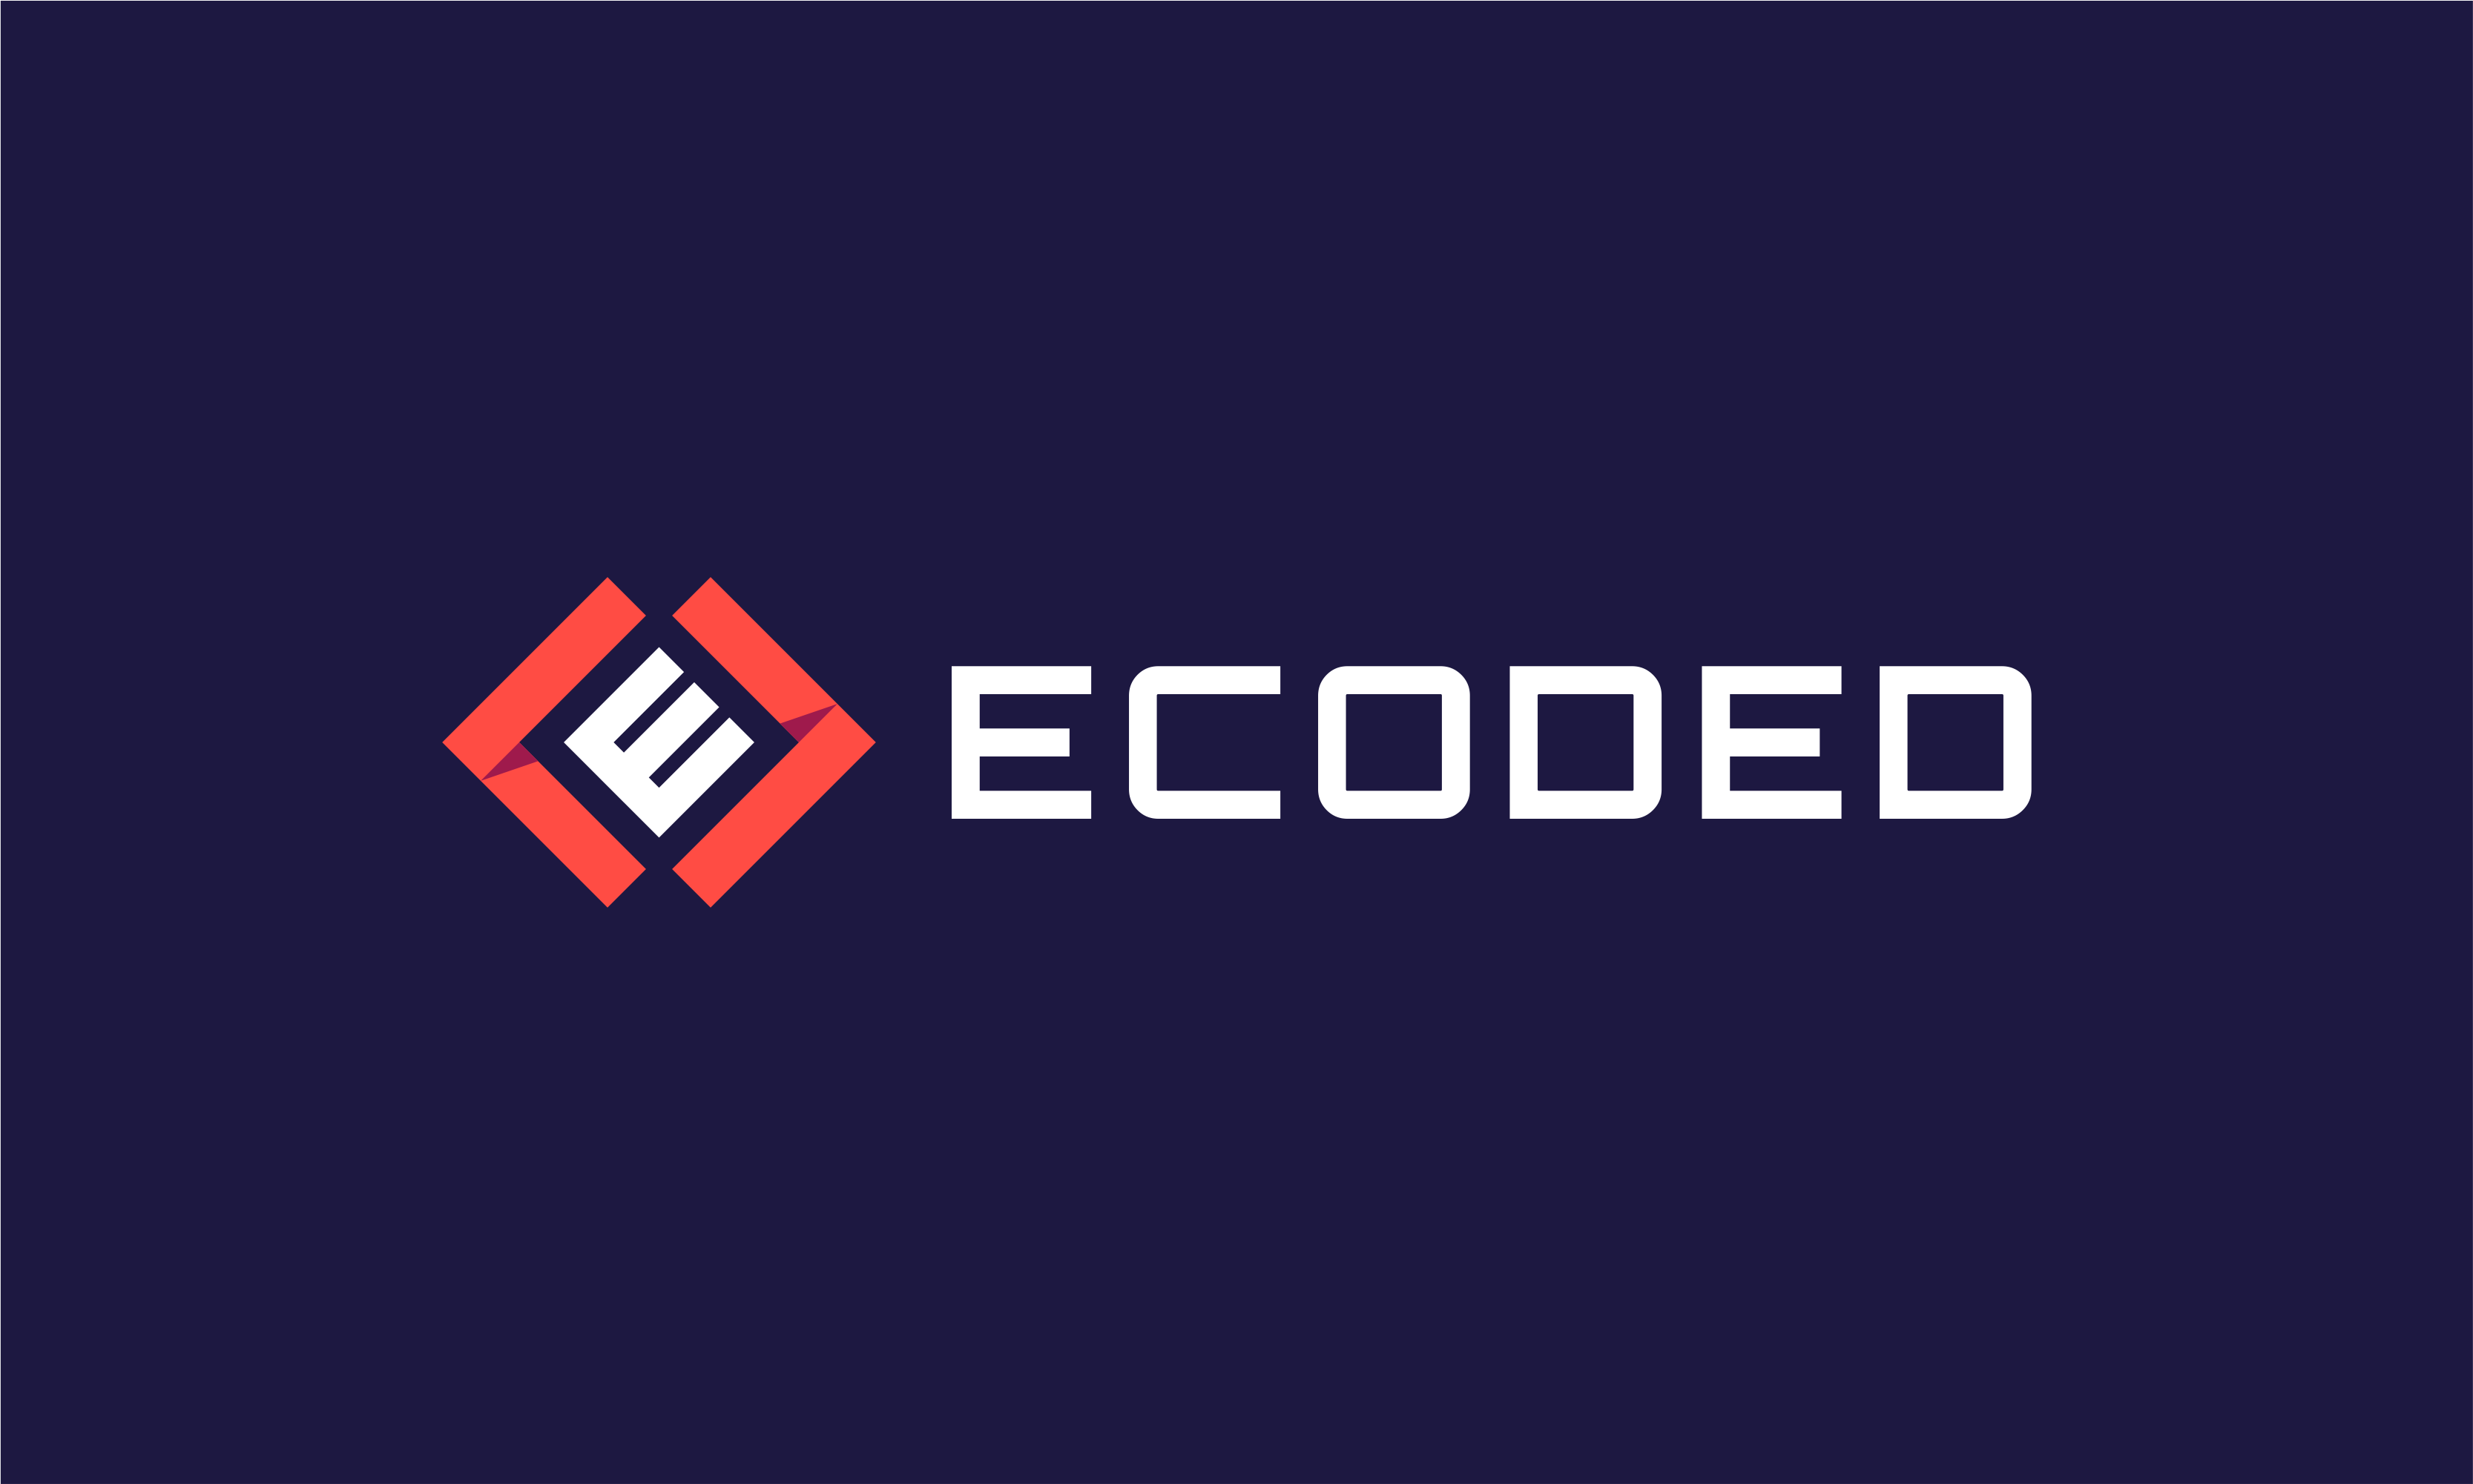 Ecoded